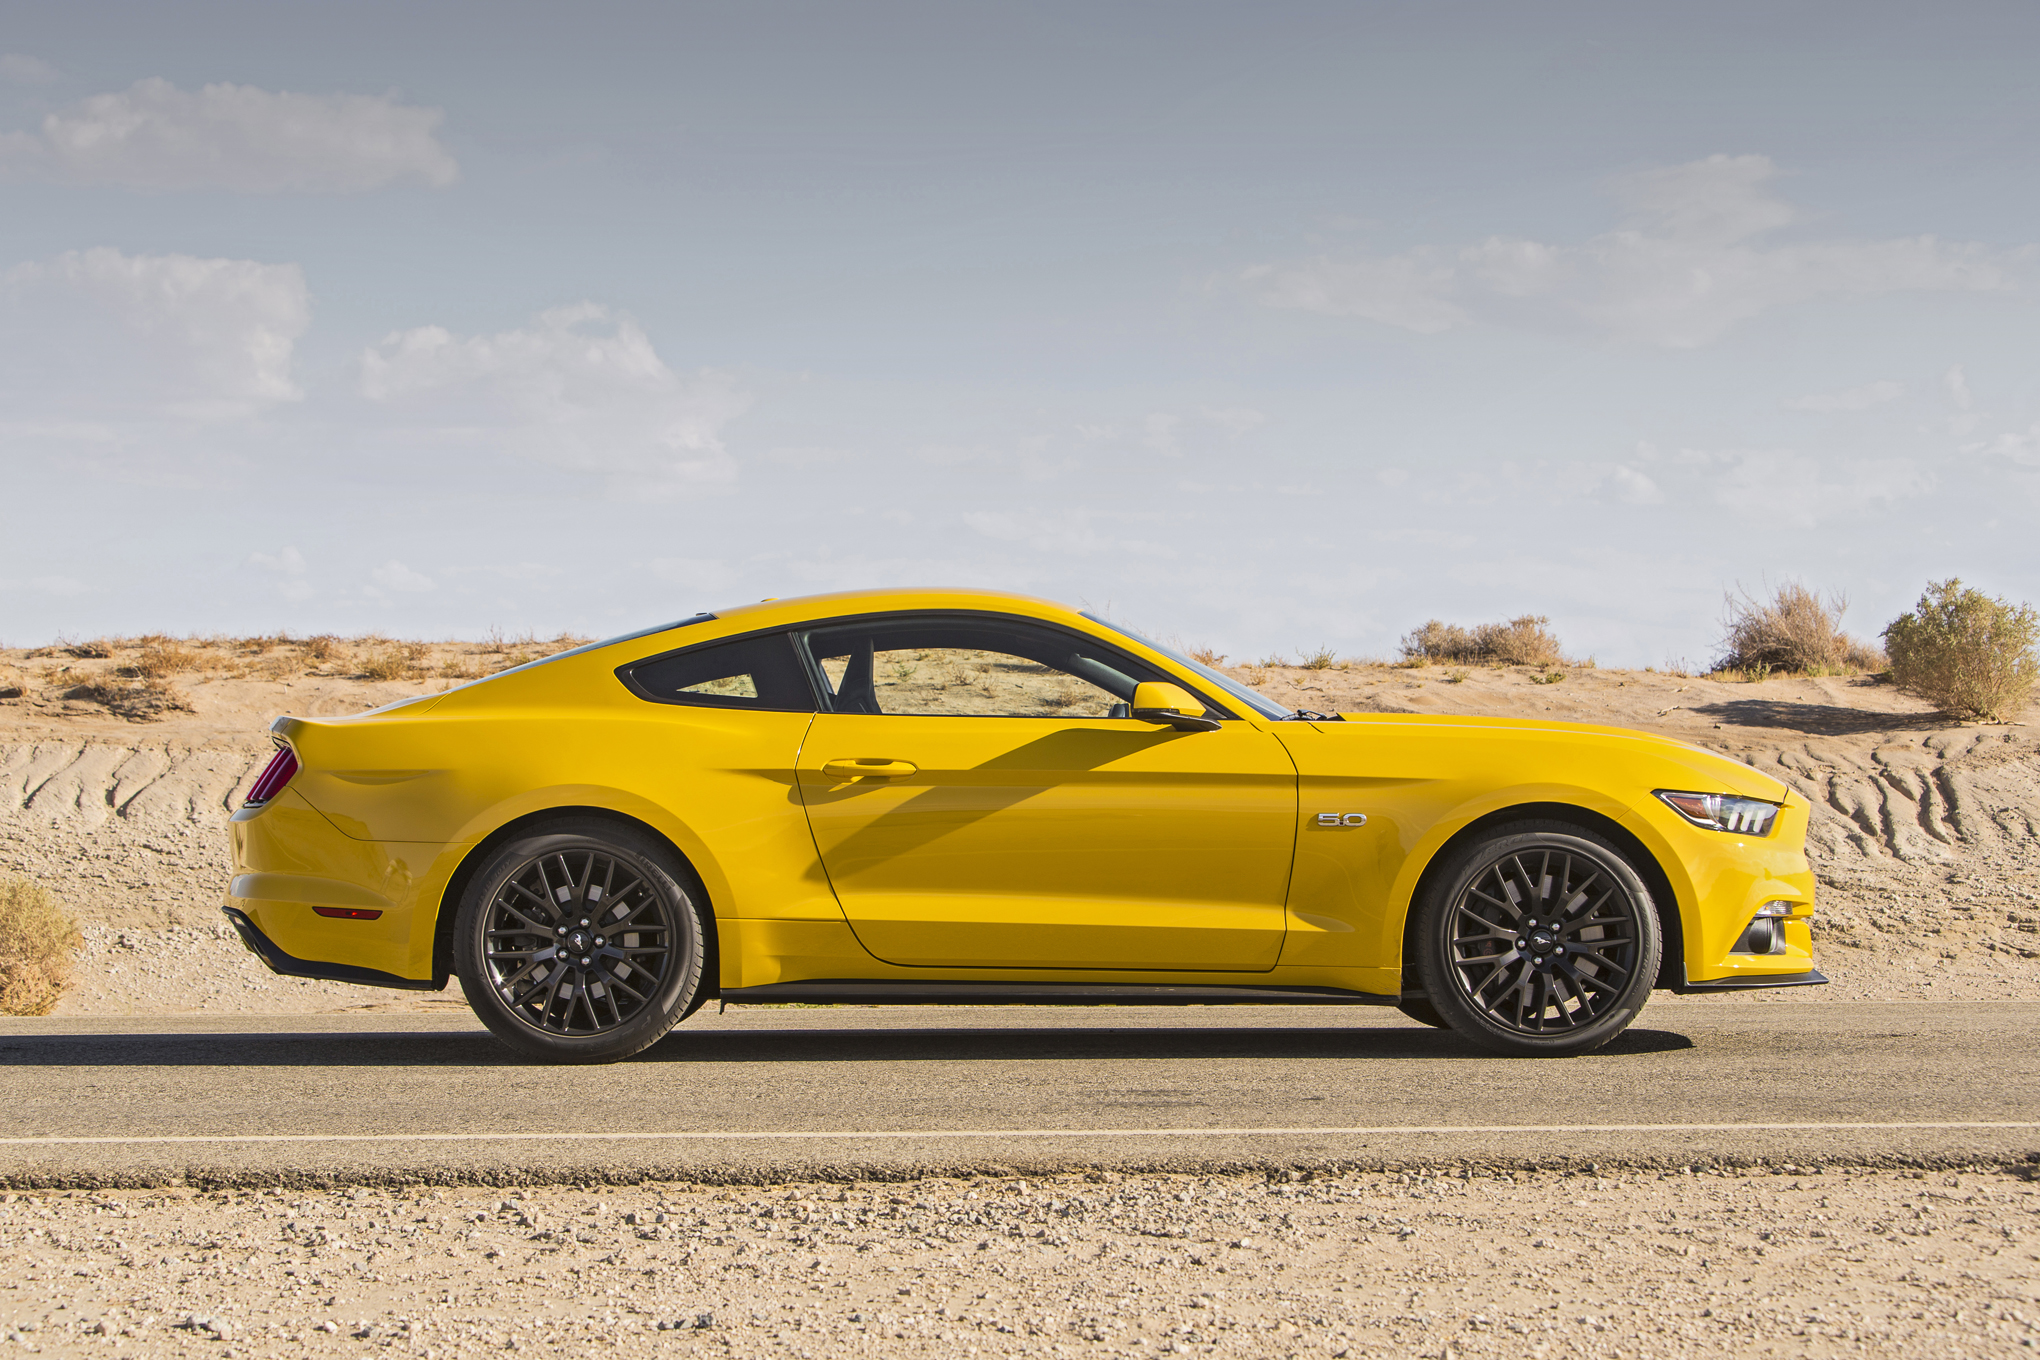 2016 Ford Mustang Shelby GT350 HD Wallpapers 2040x1360